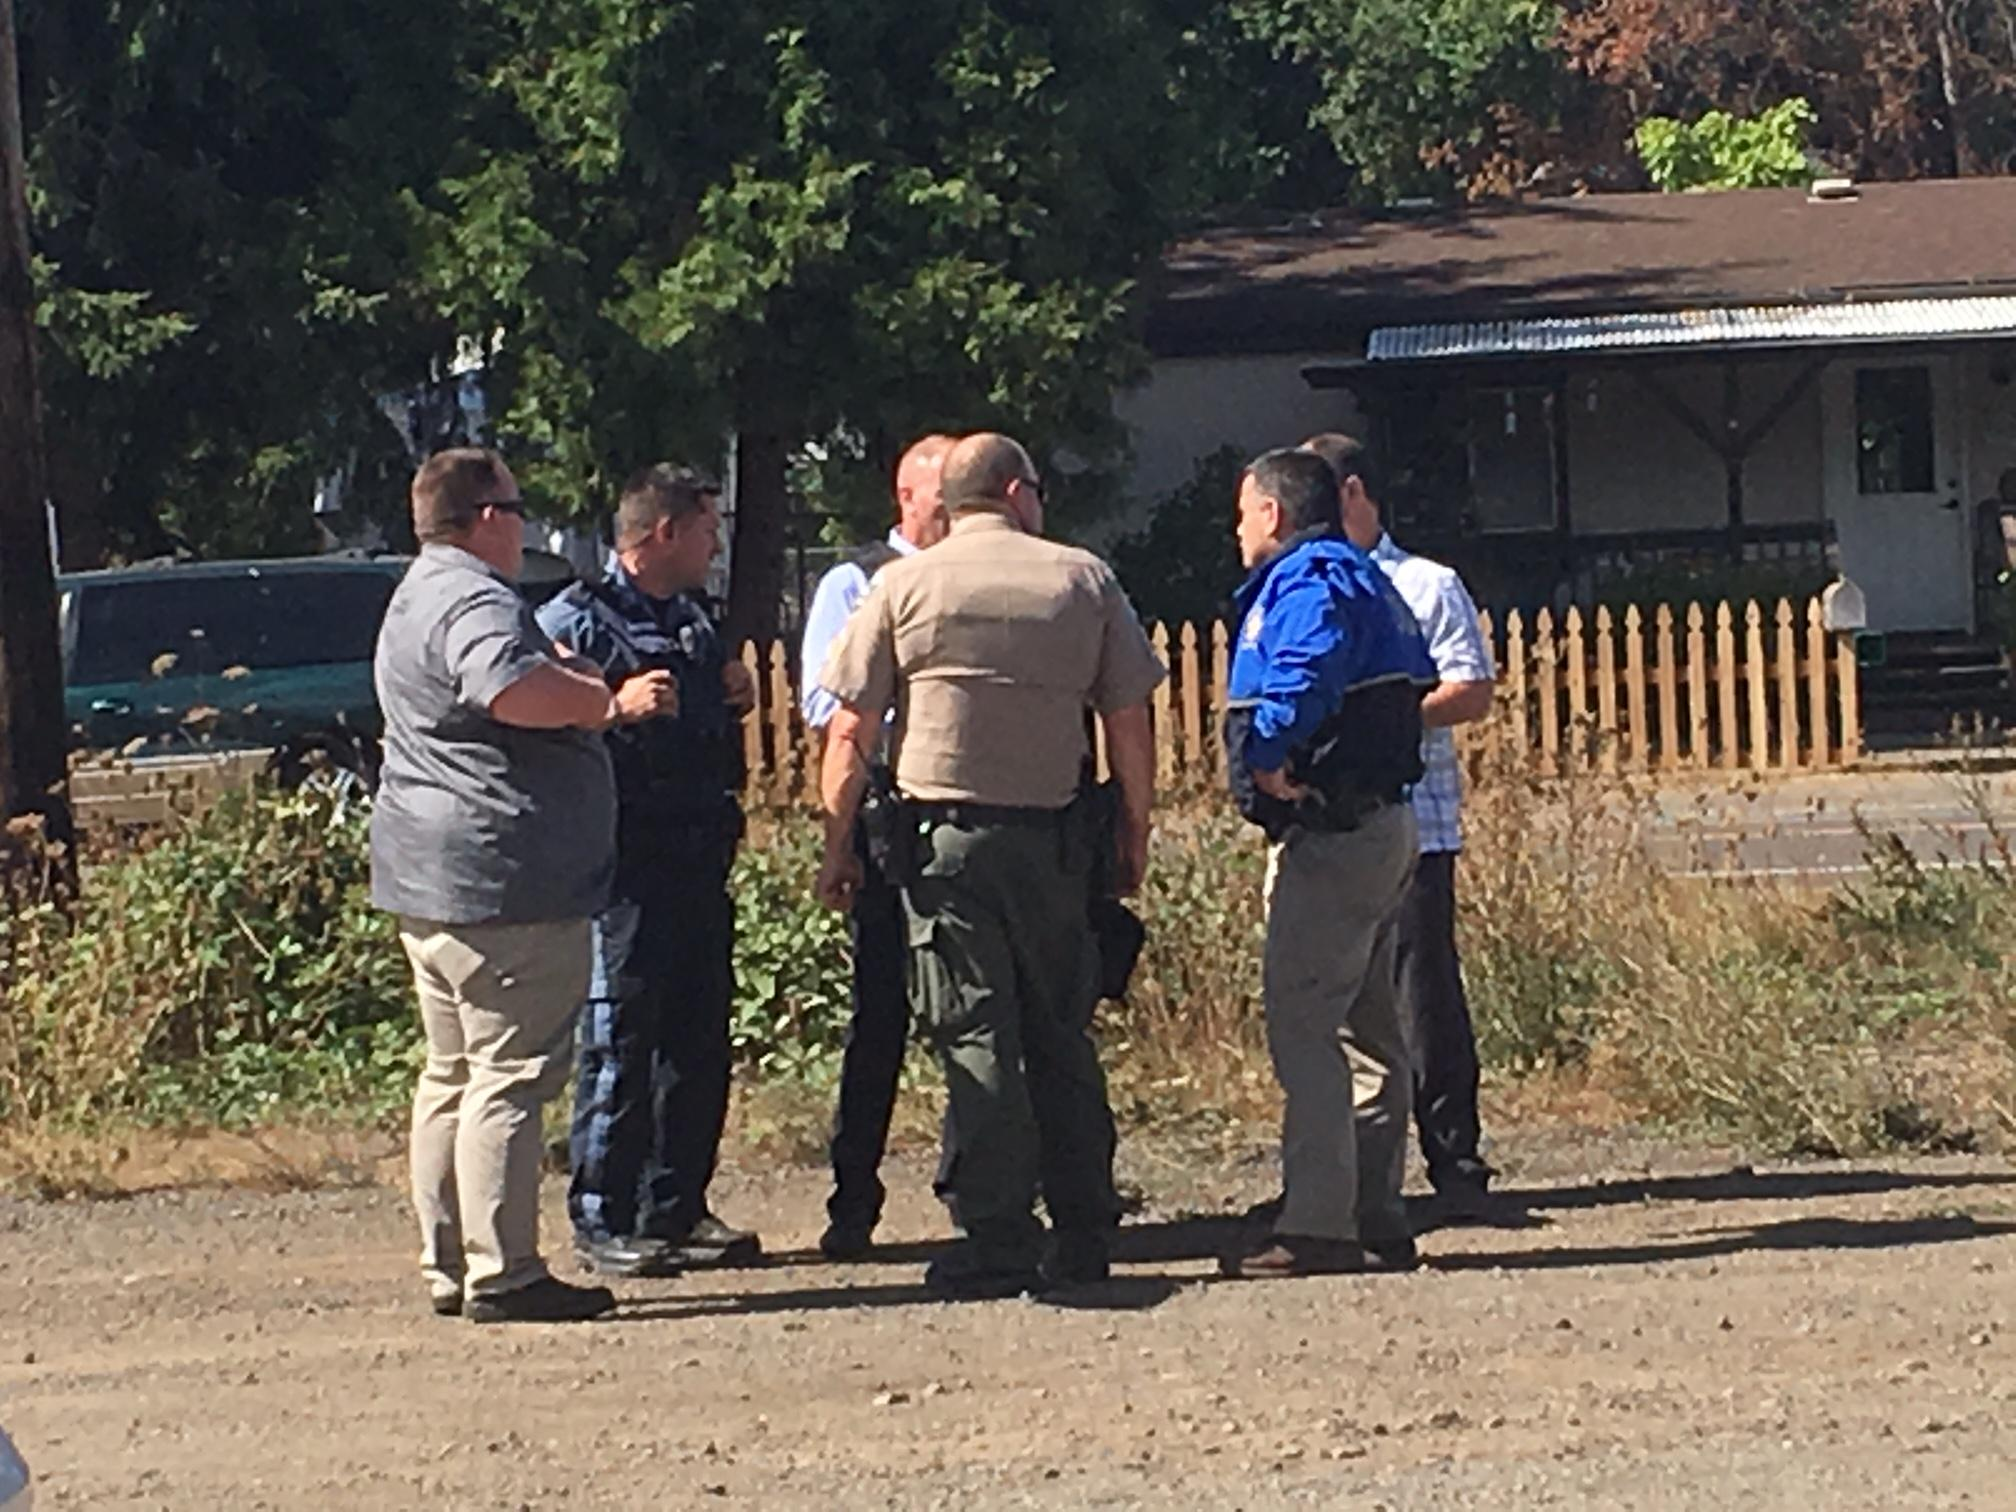 An Oregon State Police was shot Tuesday afternoon near Highway 99 and England Road in the Creswell area, according to law enforcement at the scene. (SBG)